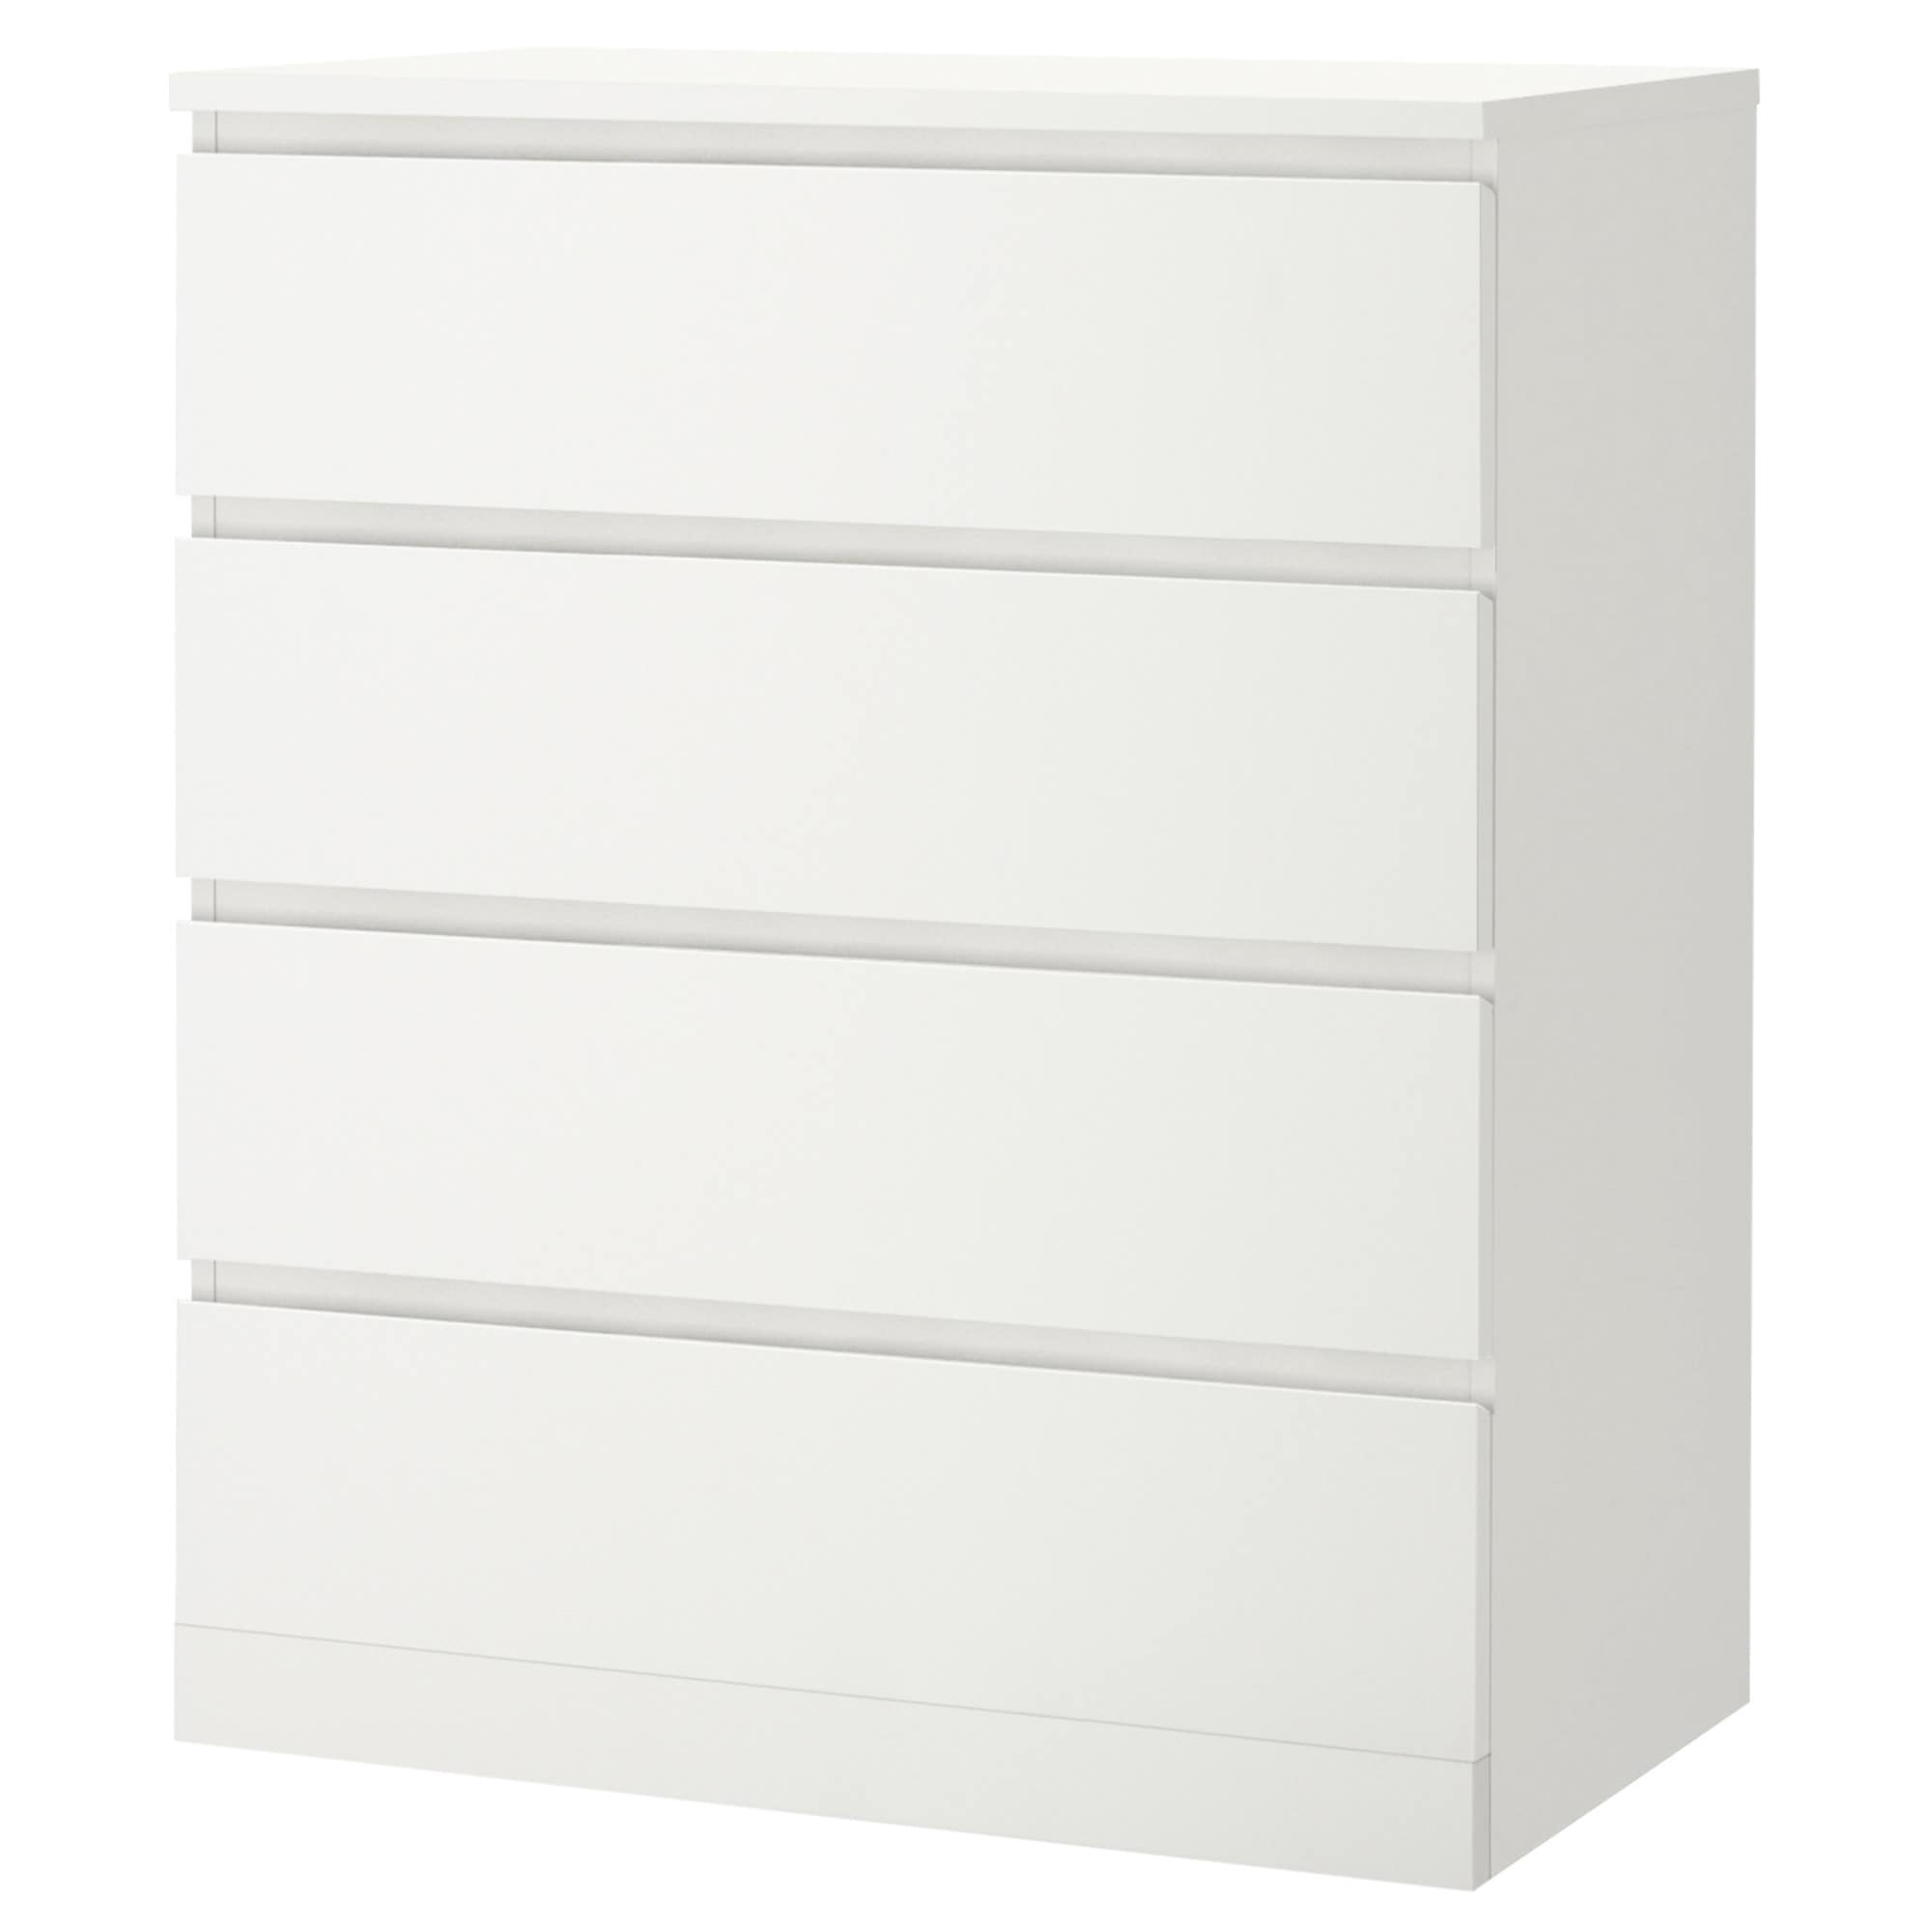 Ikea malm 4 drawer dresser - Inter Ikea Systems B V 1999 2016 Privacy Policy